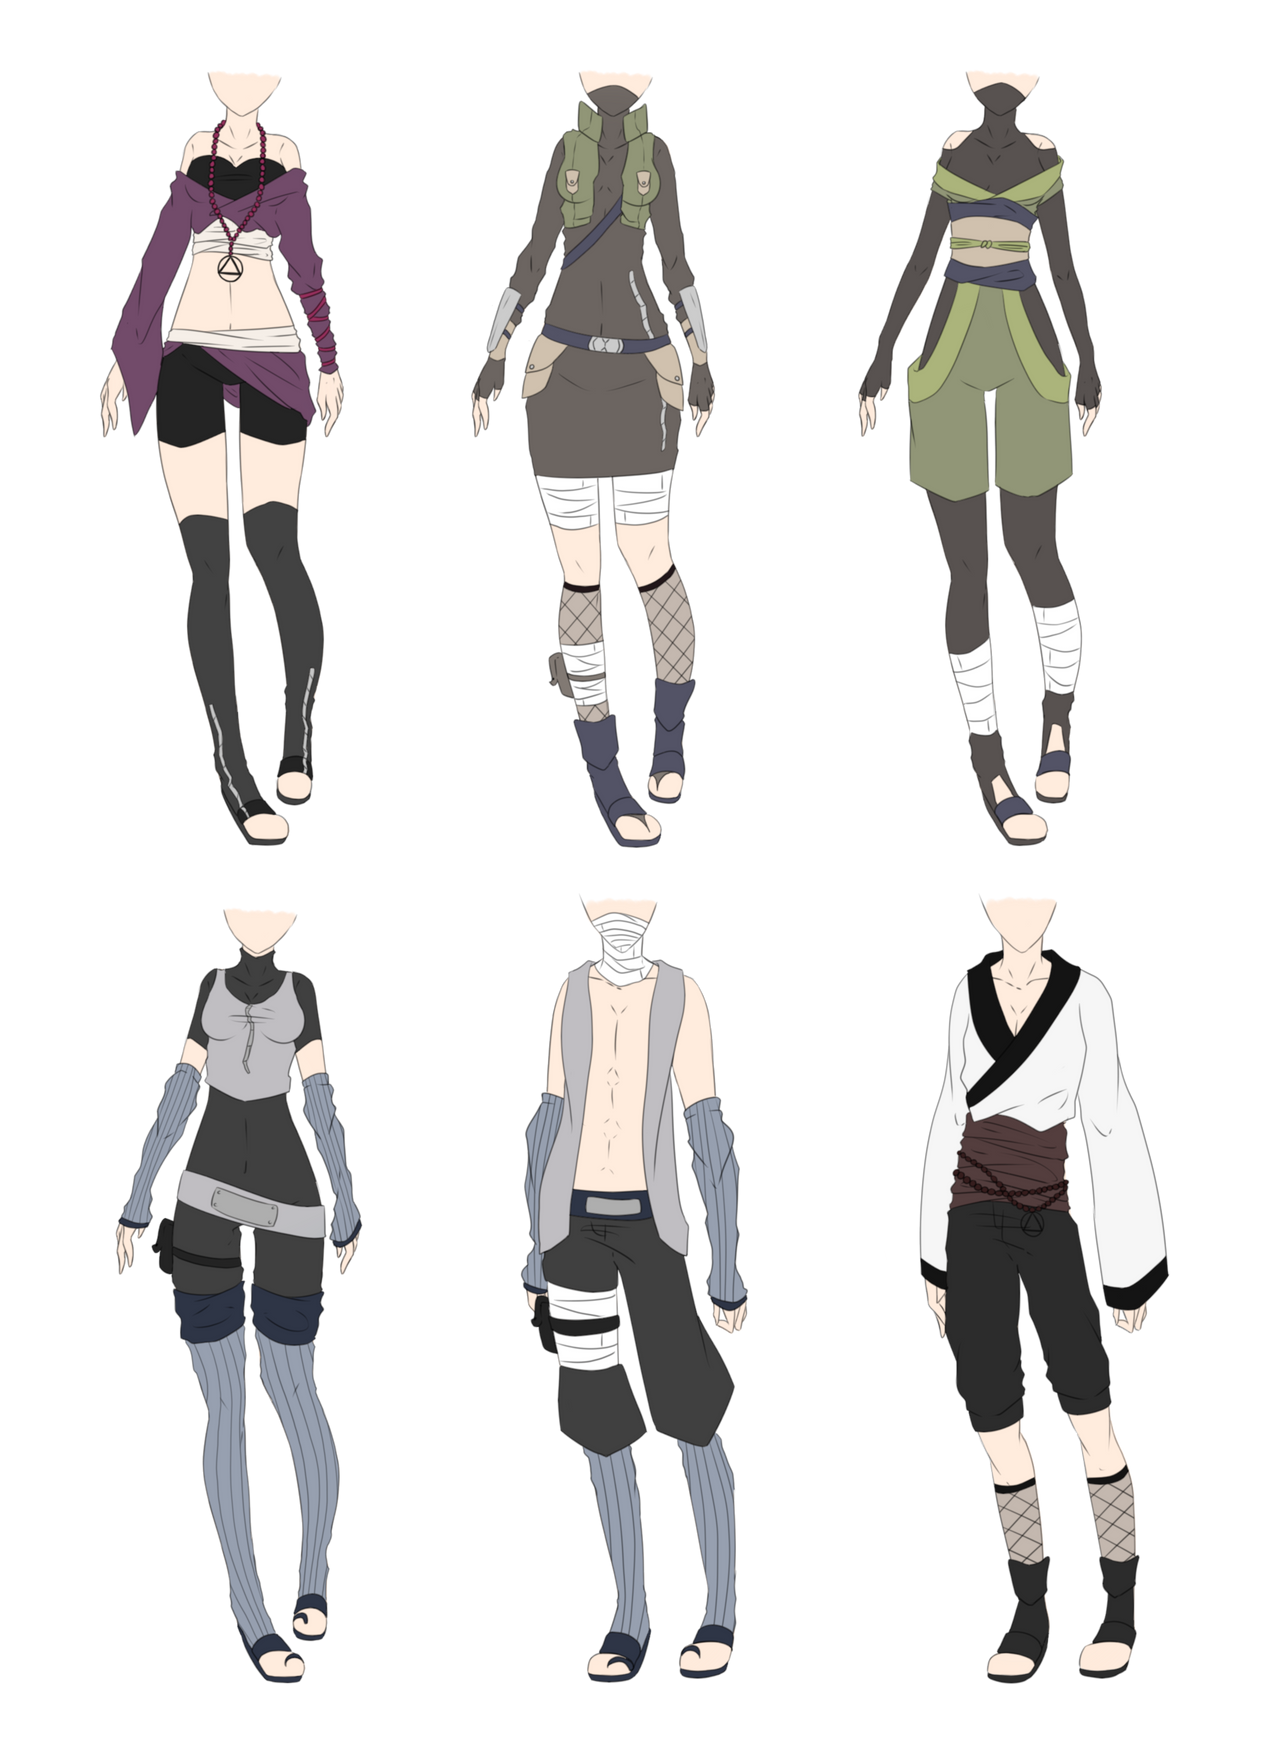 Naruto Outfit Adoptables 5 CLOSED by xNoakix3 on DeviantArt